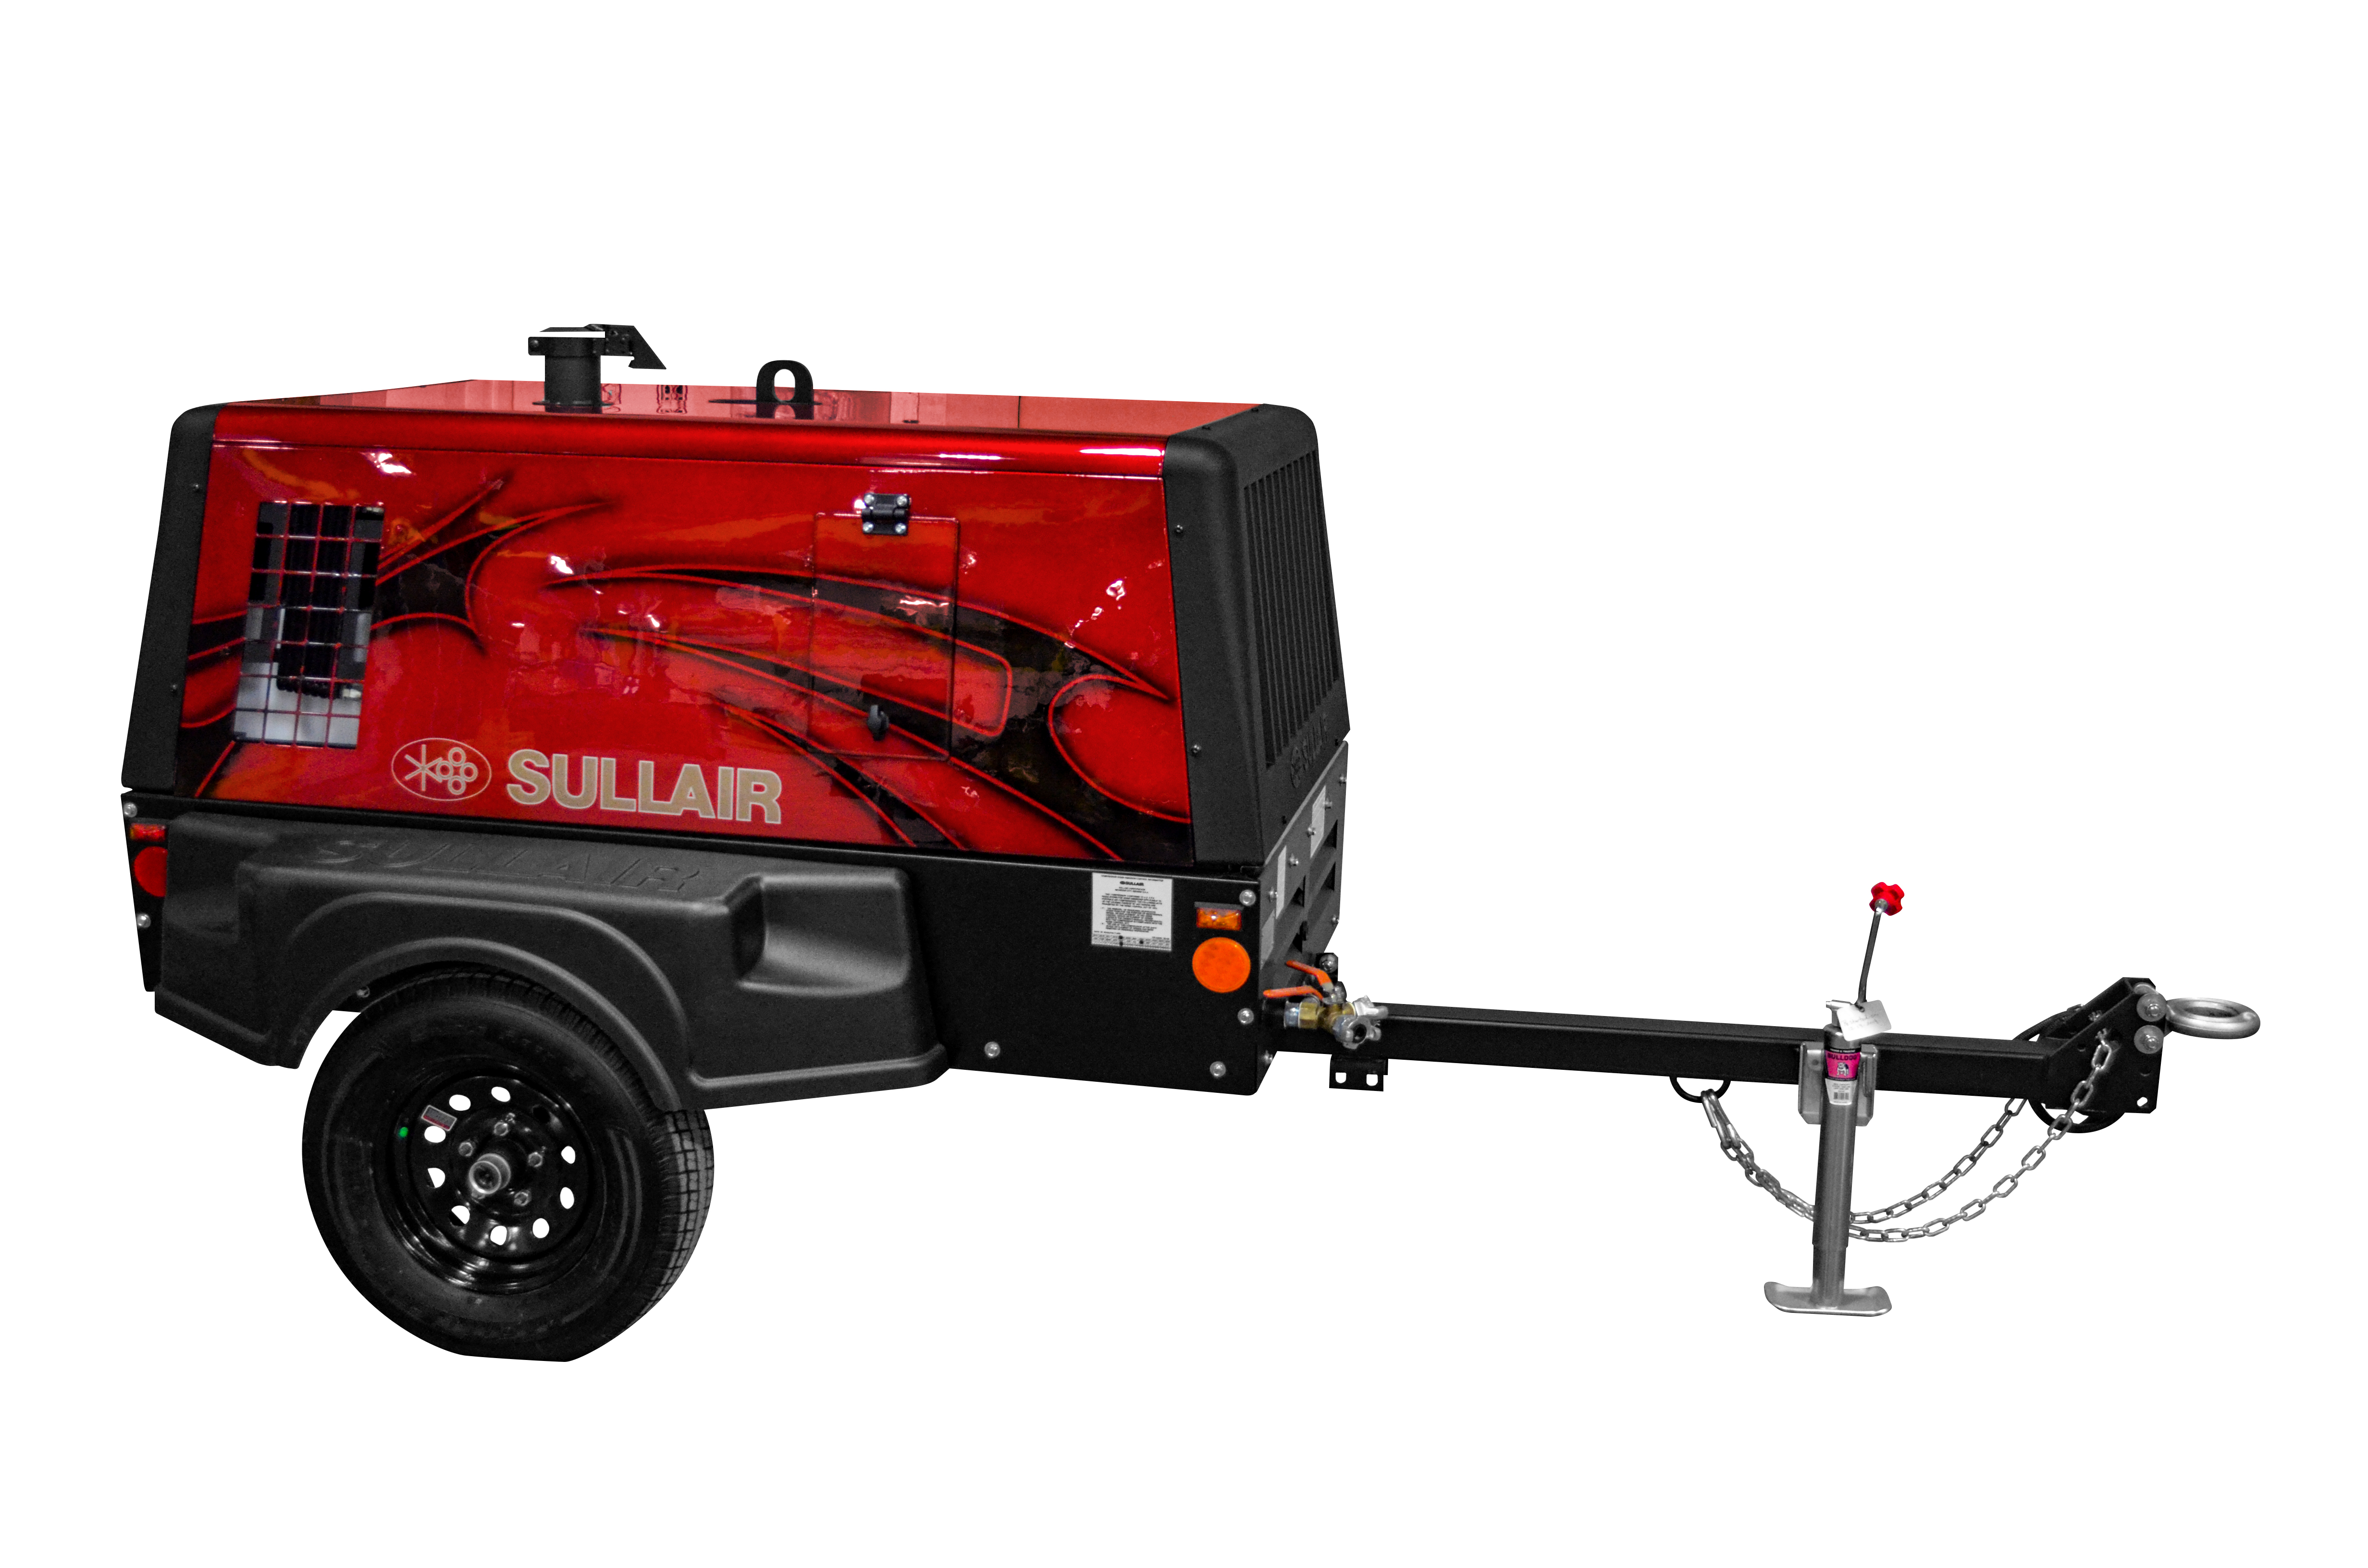 Sullair Perkins-Powered 185 cfm portable air compressor for The ARA Foundation